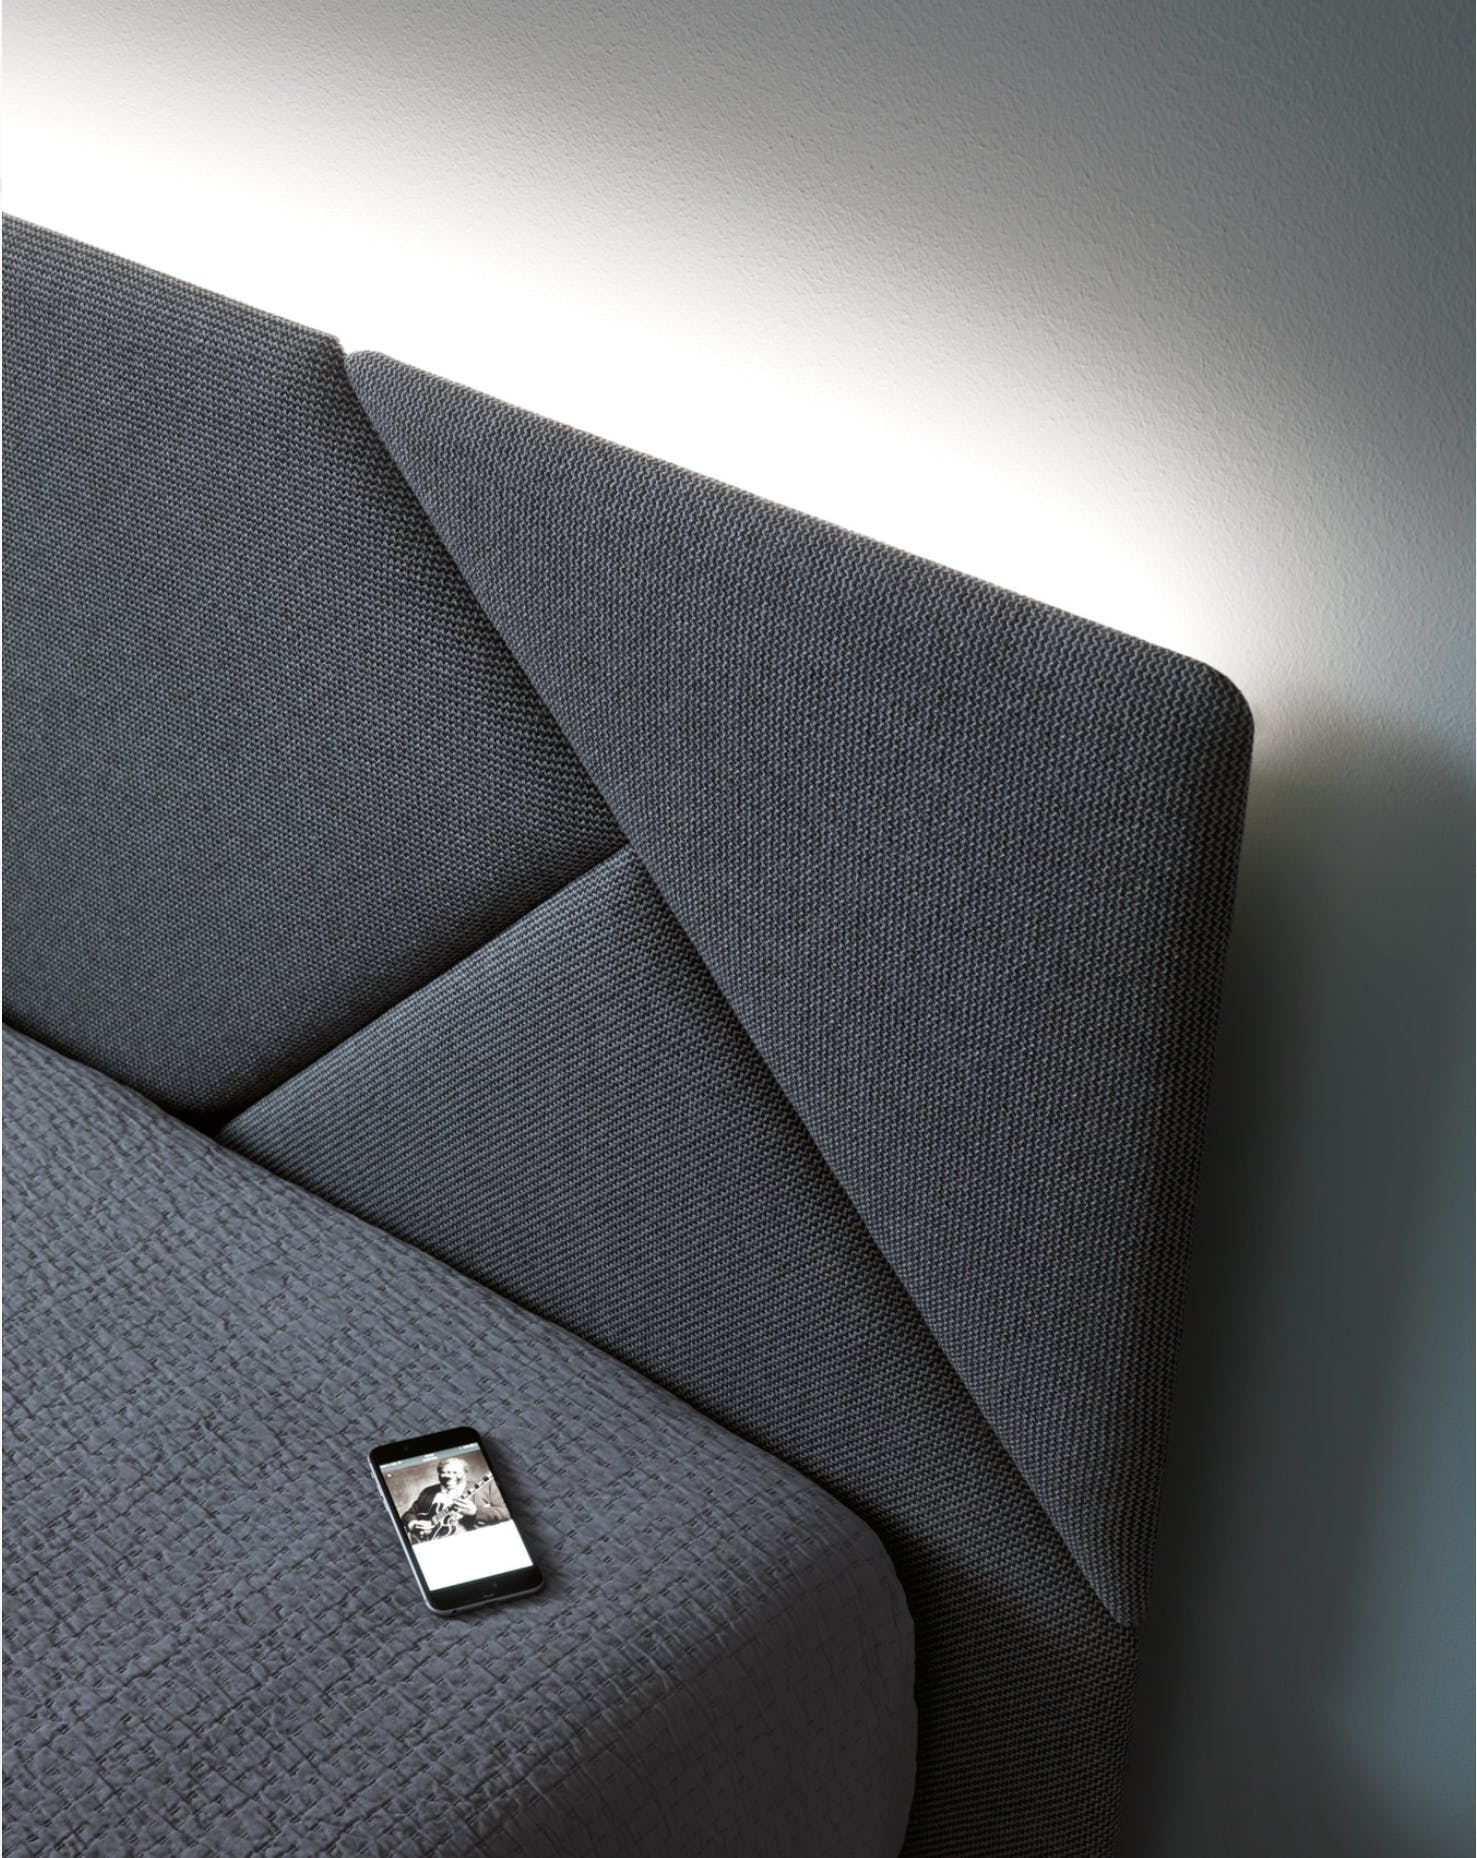 Caccaro Opus Bed Board Detail Haute Living